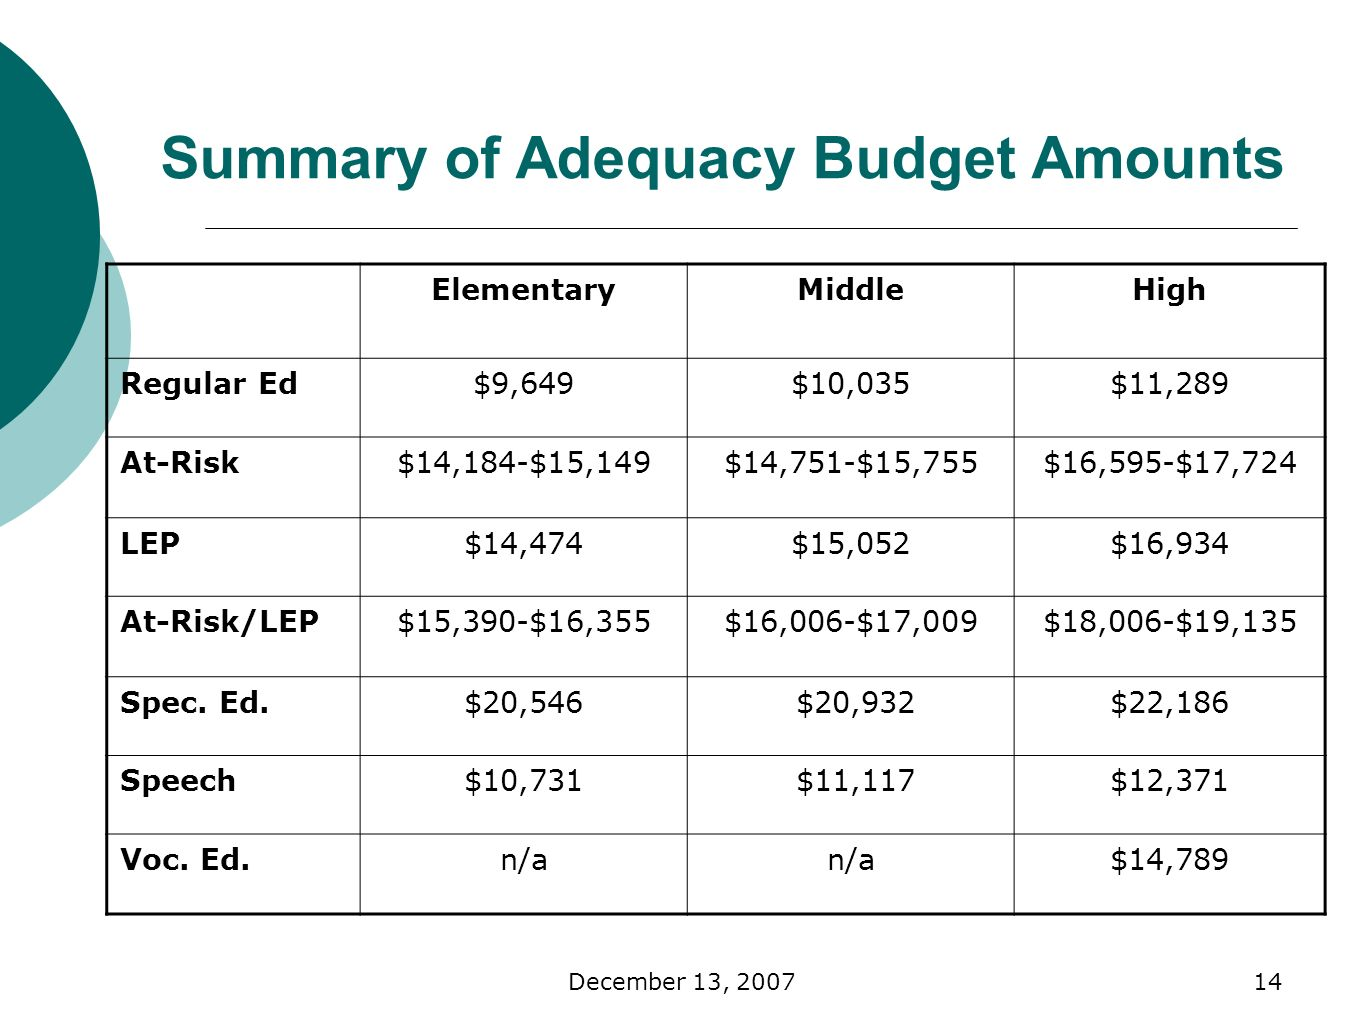 December 13, Summary of Adequacy Budget Amounts ElementaryMiddleHigh Regular Ed$9,649$10,035$11,289 At-Risk$14,184-$15,149$14,751-$15,755$16,595-$17,724 LEP$14,474$15,052$16,934 At-Risk/LEP$15,390-$16,355$16,006-$17,009$18,006-$19,135 Spec.